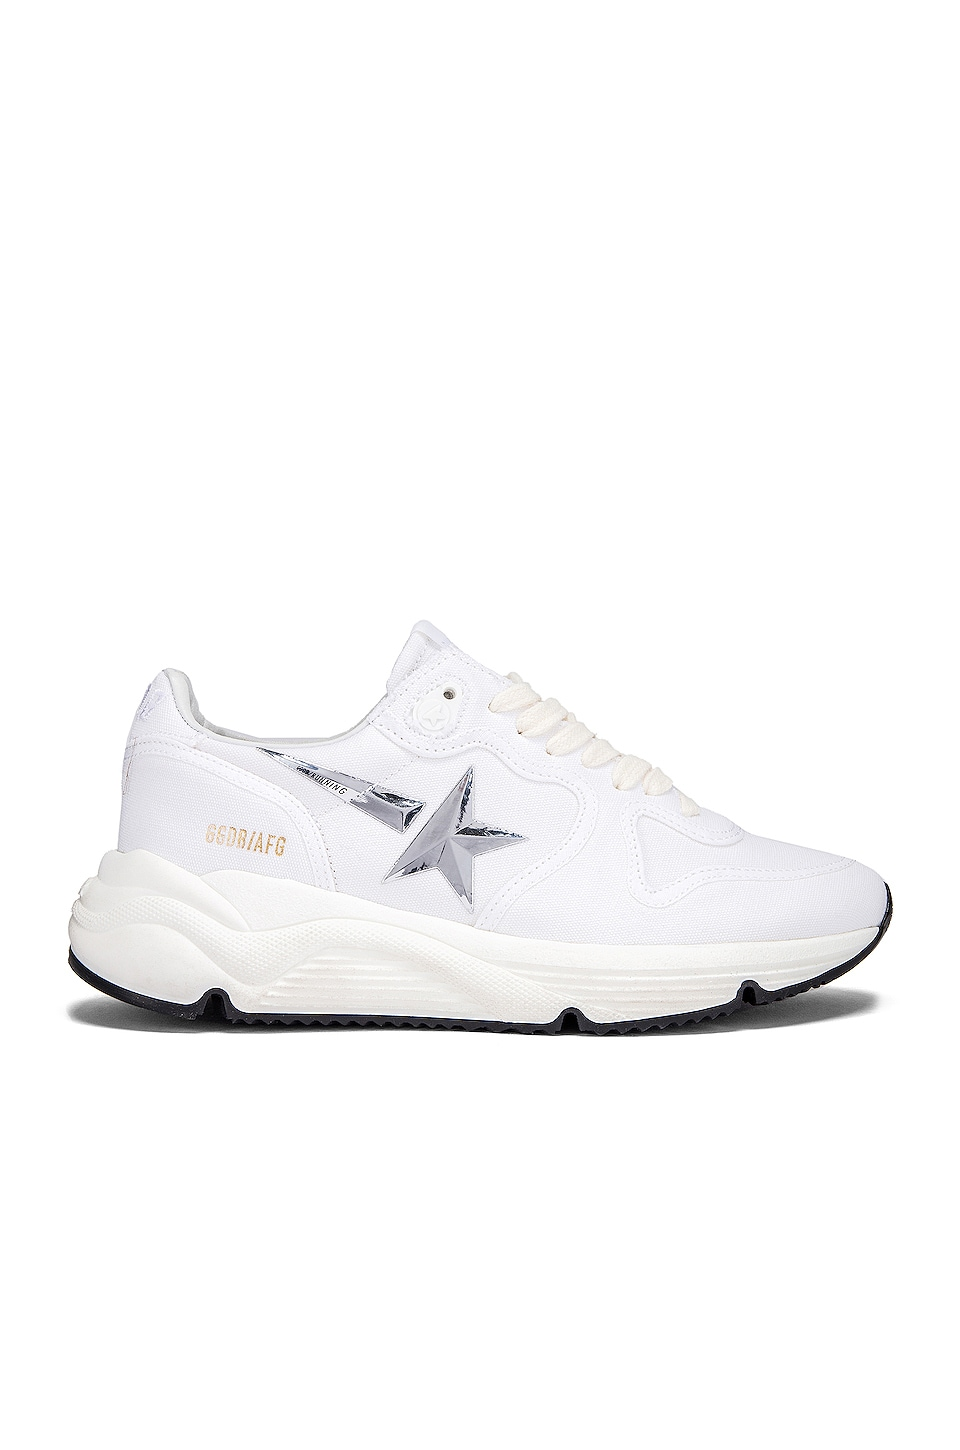 Golden Goose ZAPATILLA DEPORTIVA RUNNING SOLE